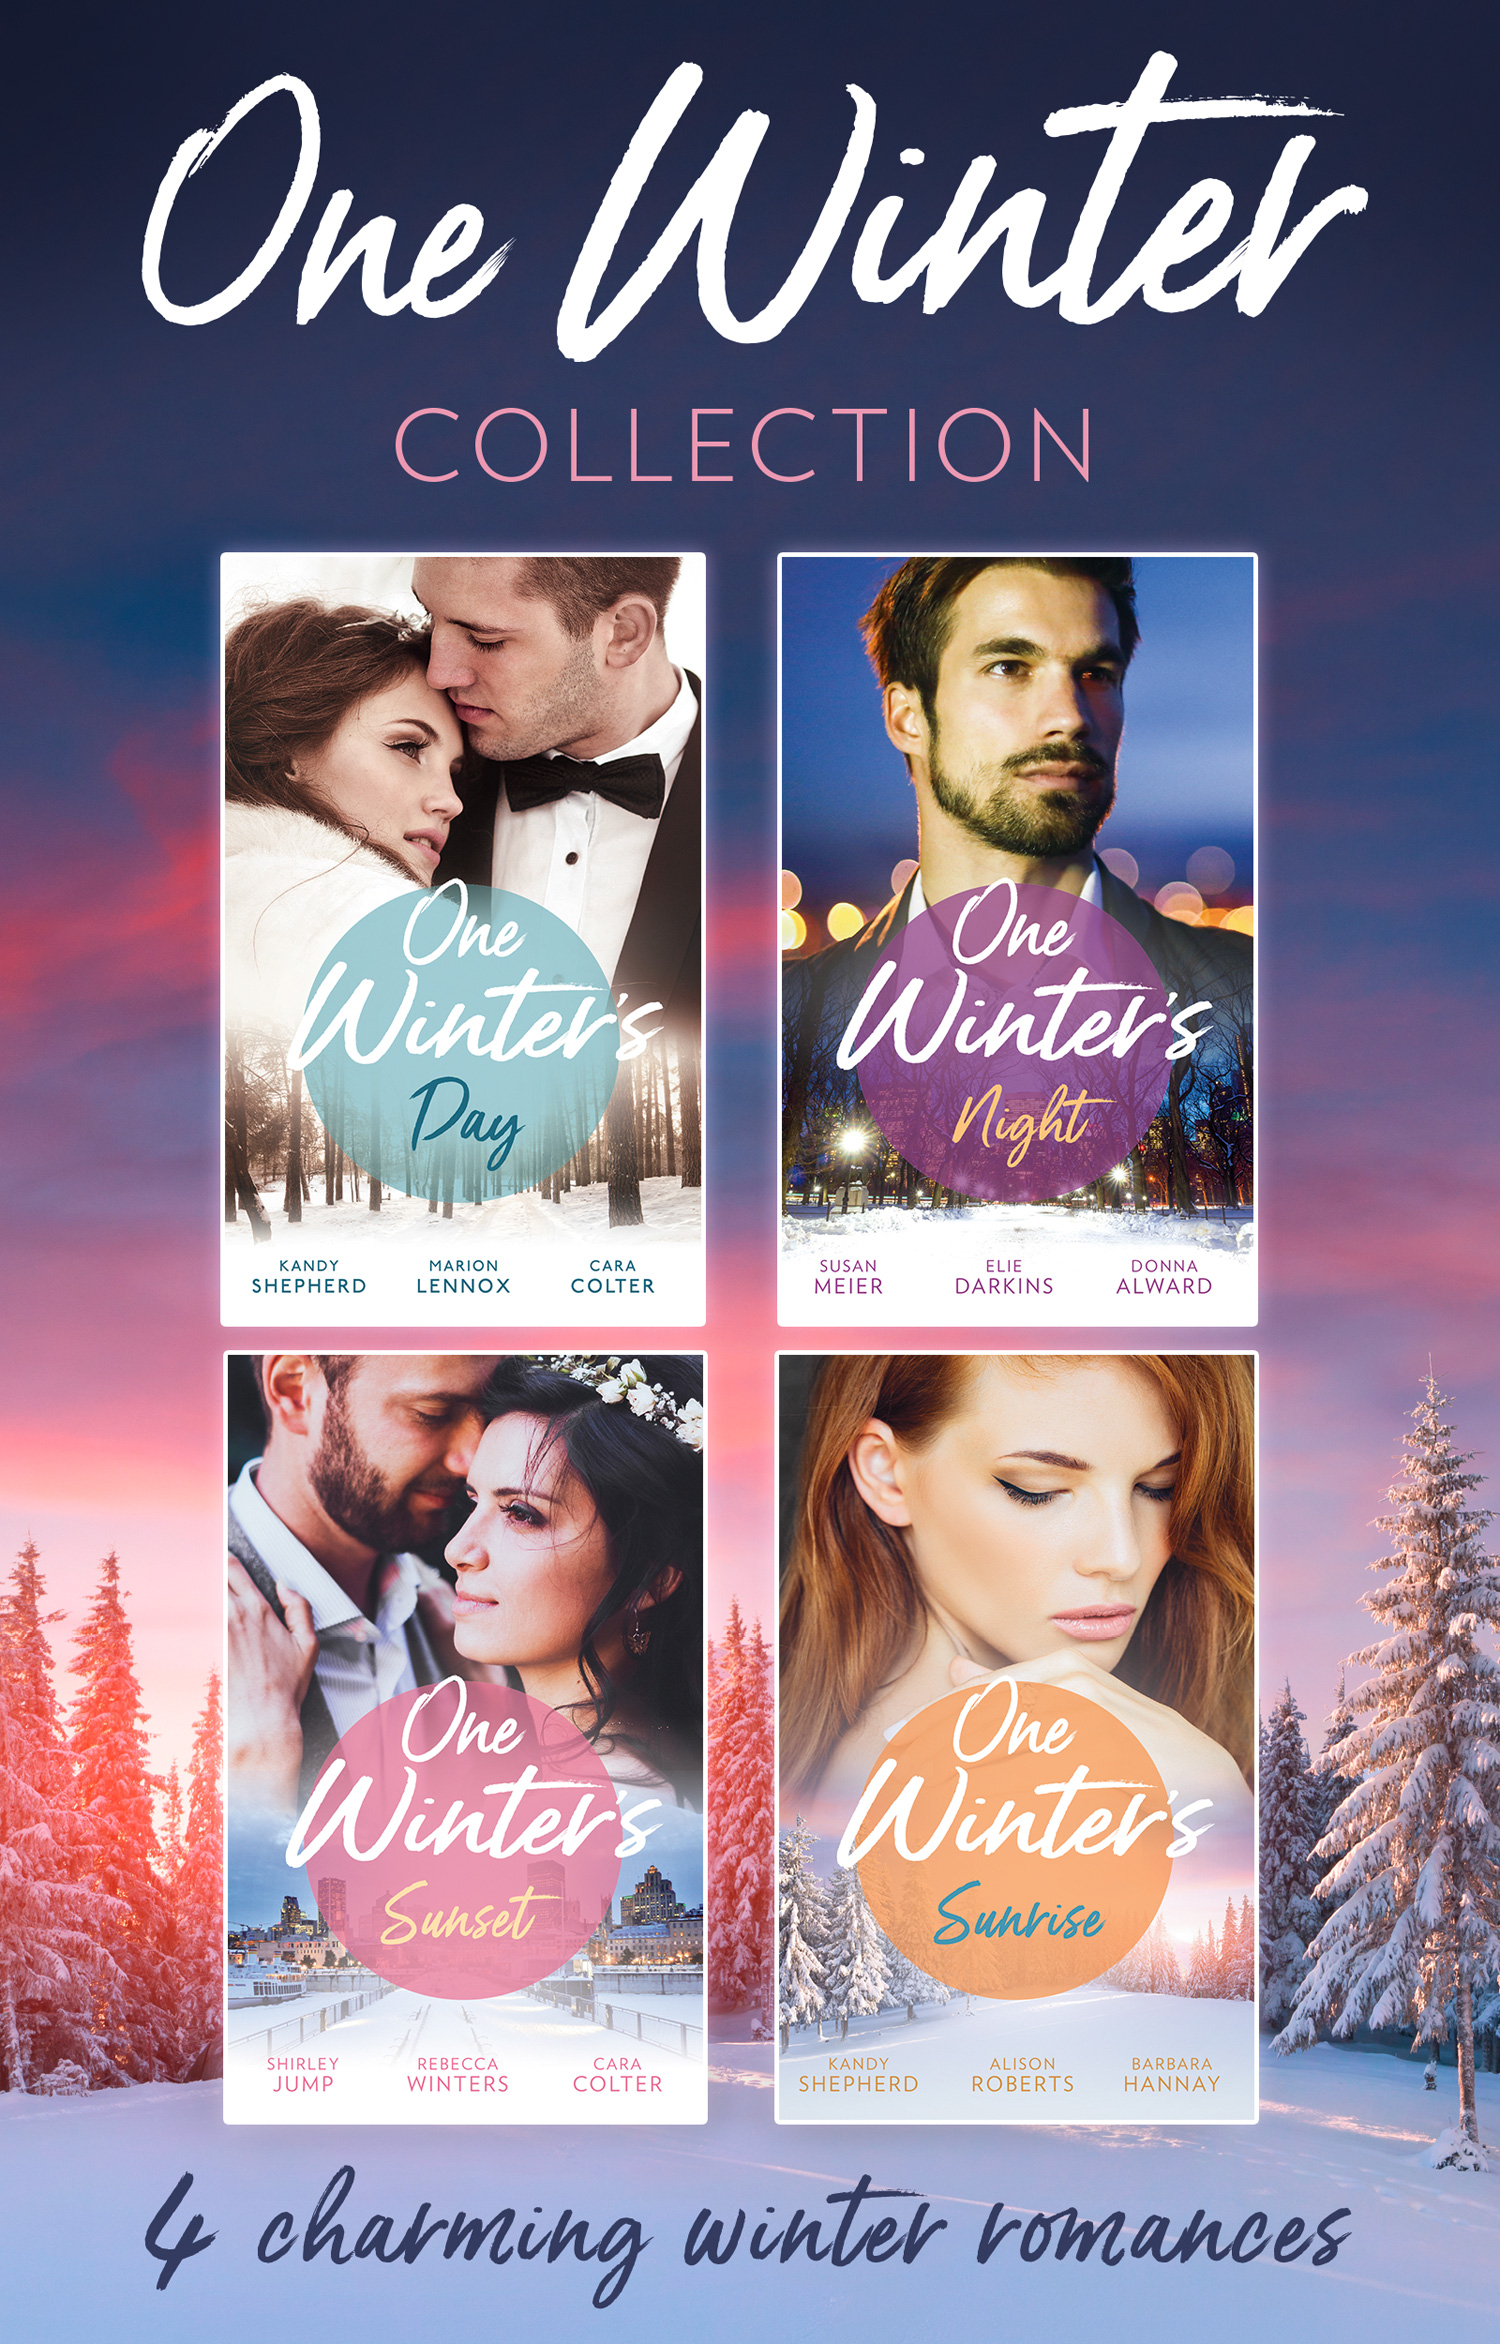 The One Winter Collection